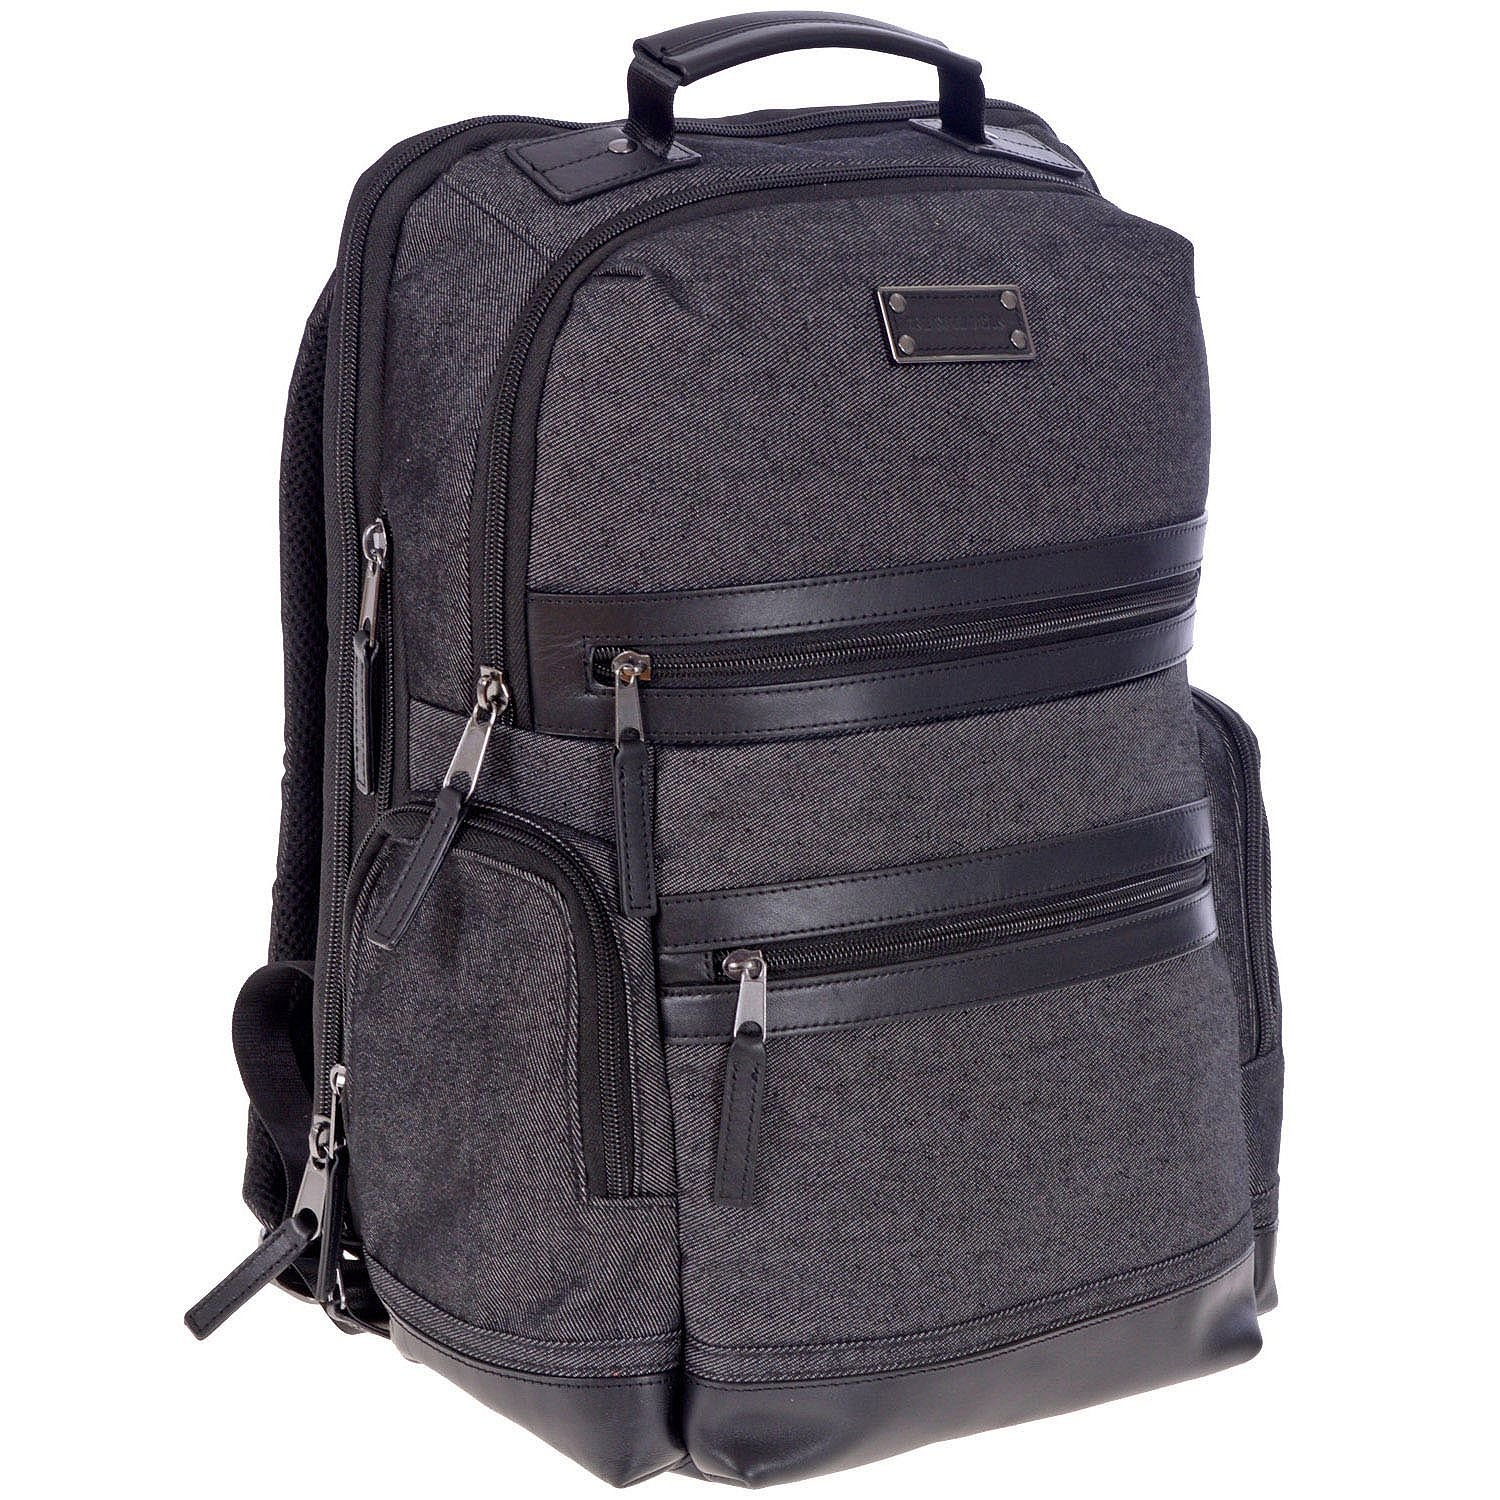 Amazon.com: Renwick Business Backpack with Genuine Leather Trim, Black Denim: Computers & Accessories